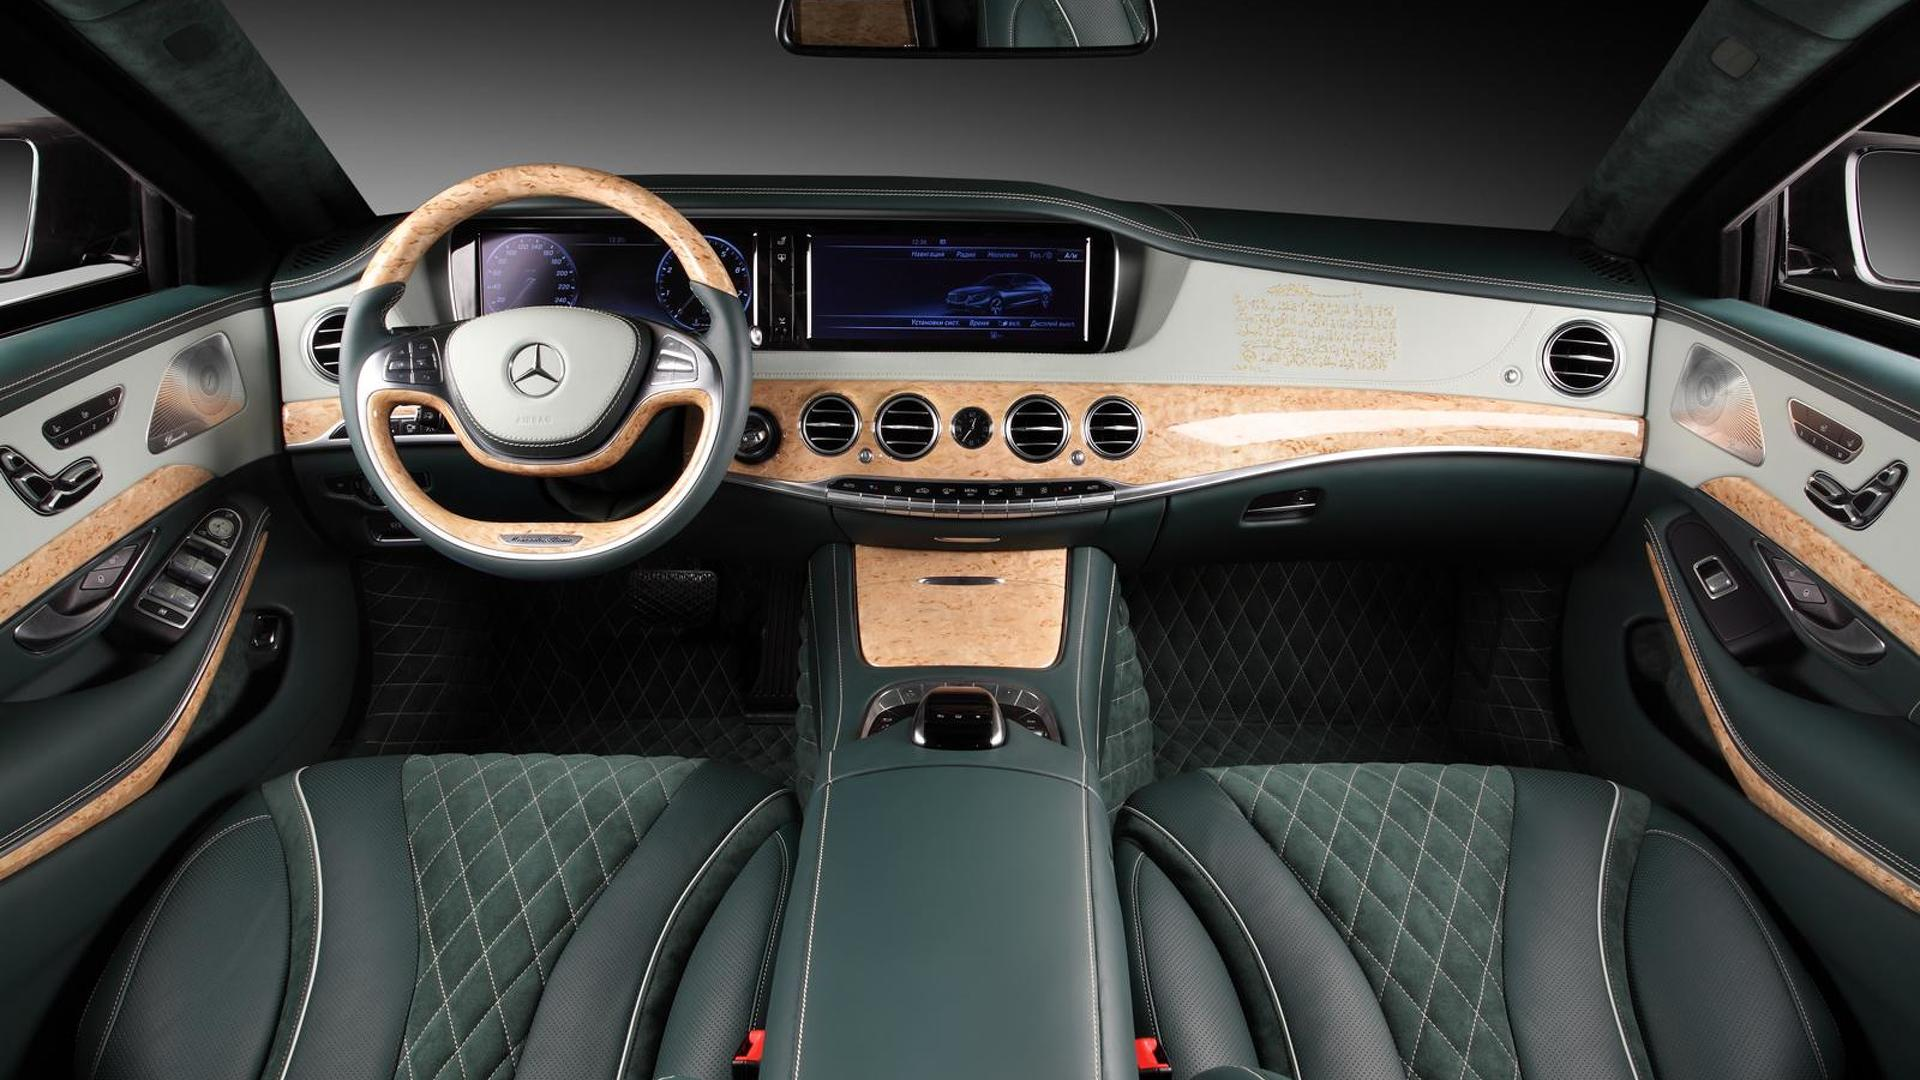 2014 mercedes benz s600 guard interior cabin tweaked by topcar for Mercedes benz s600 2014